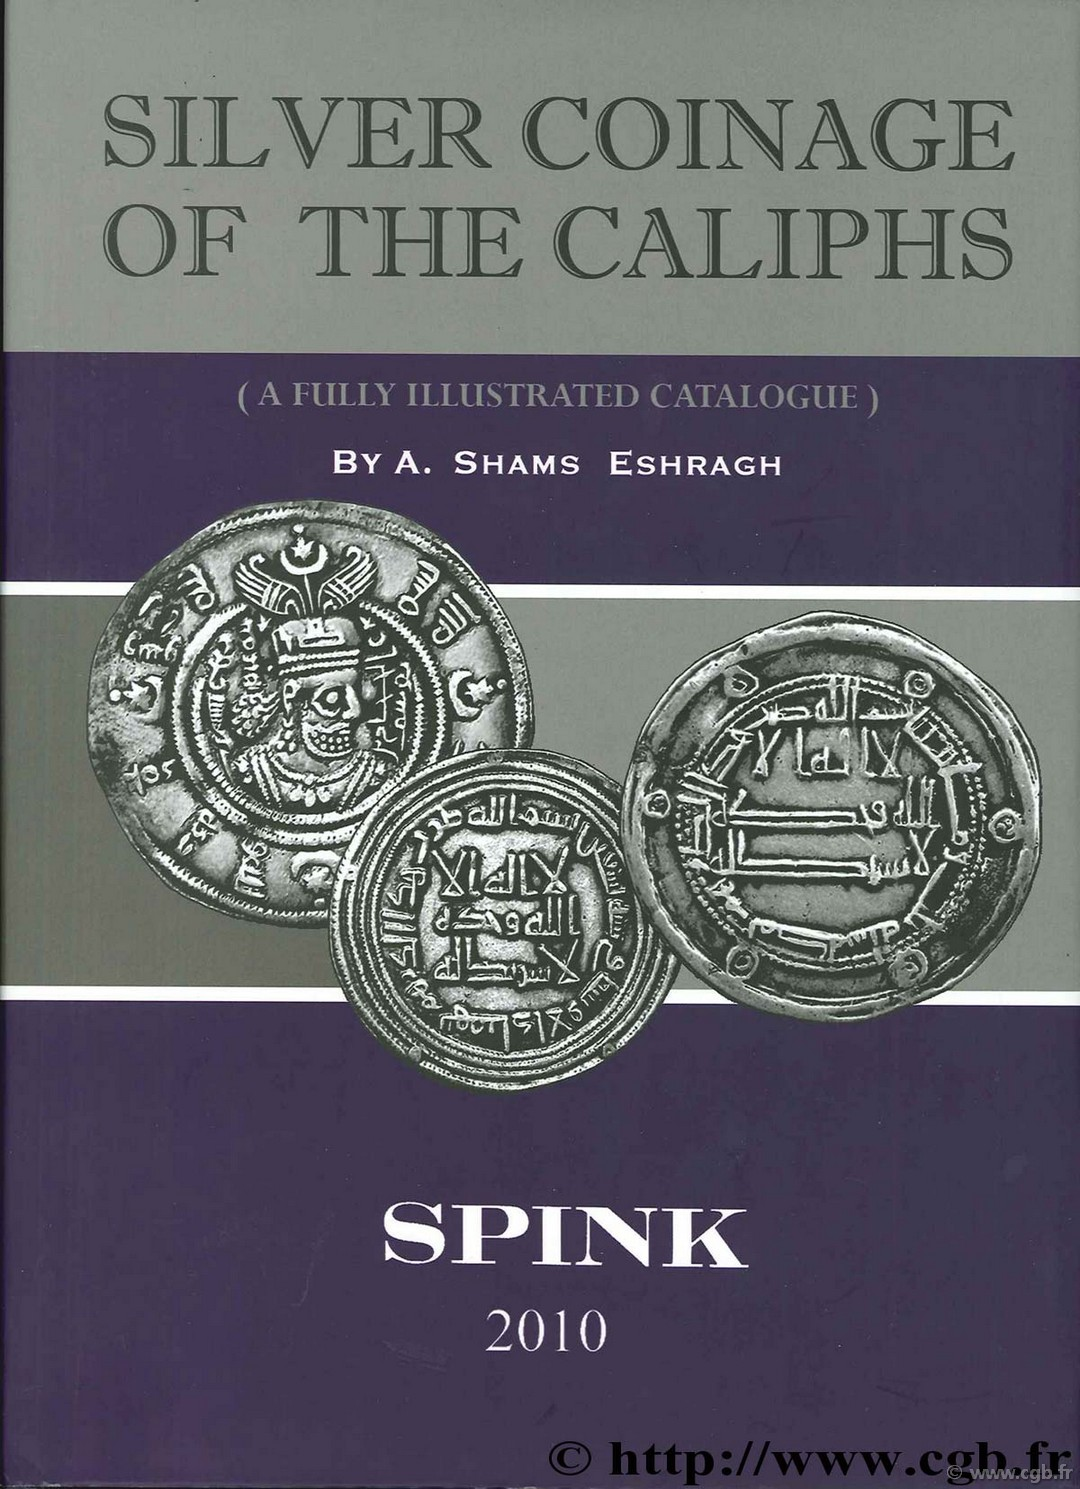 Silver Coinage of the Caliphs - A Fully Illustrated Catalogue SHAMS-ESHRAGH A.